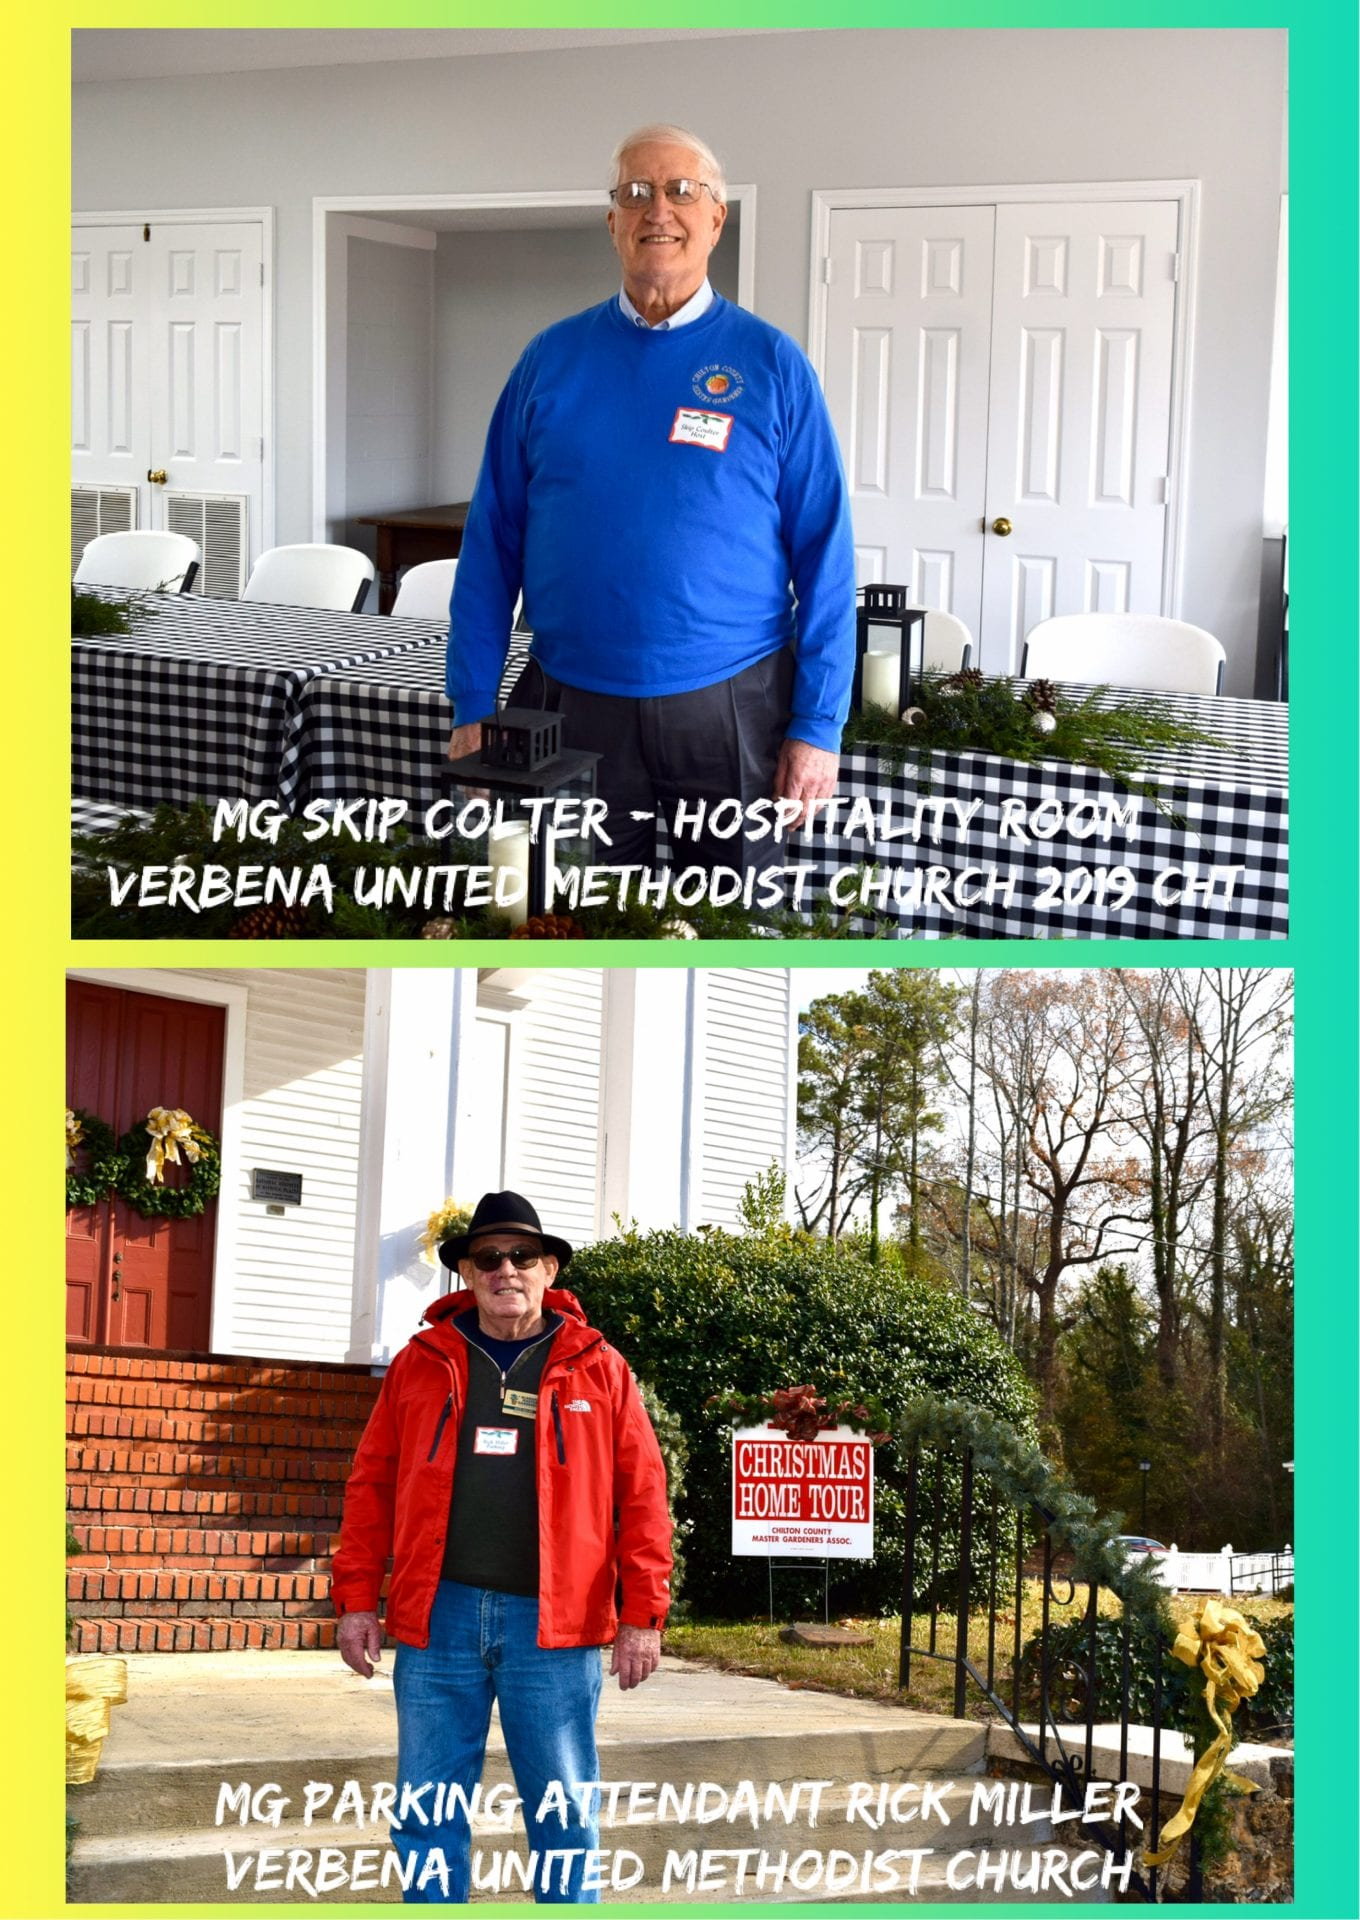 Hospitality and parking attendant at Verbena U.M. Church 2019 Christmas Home Tour